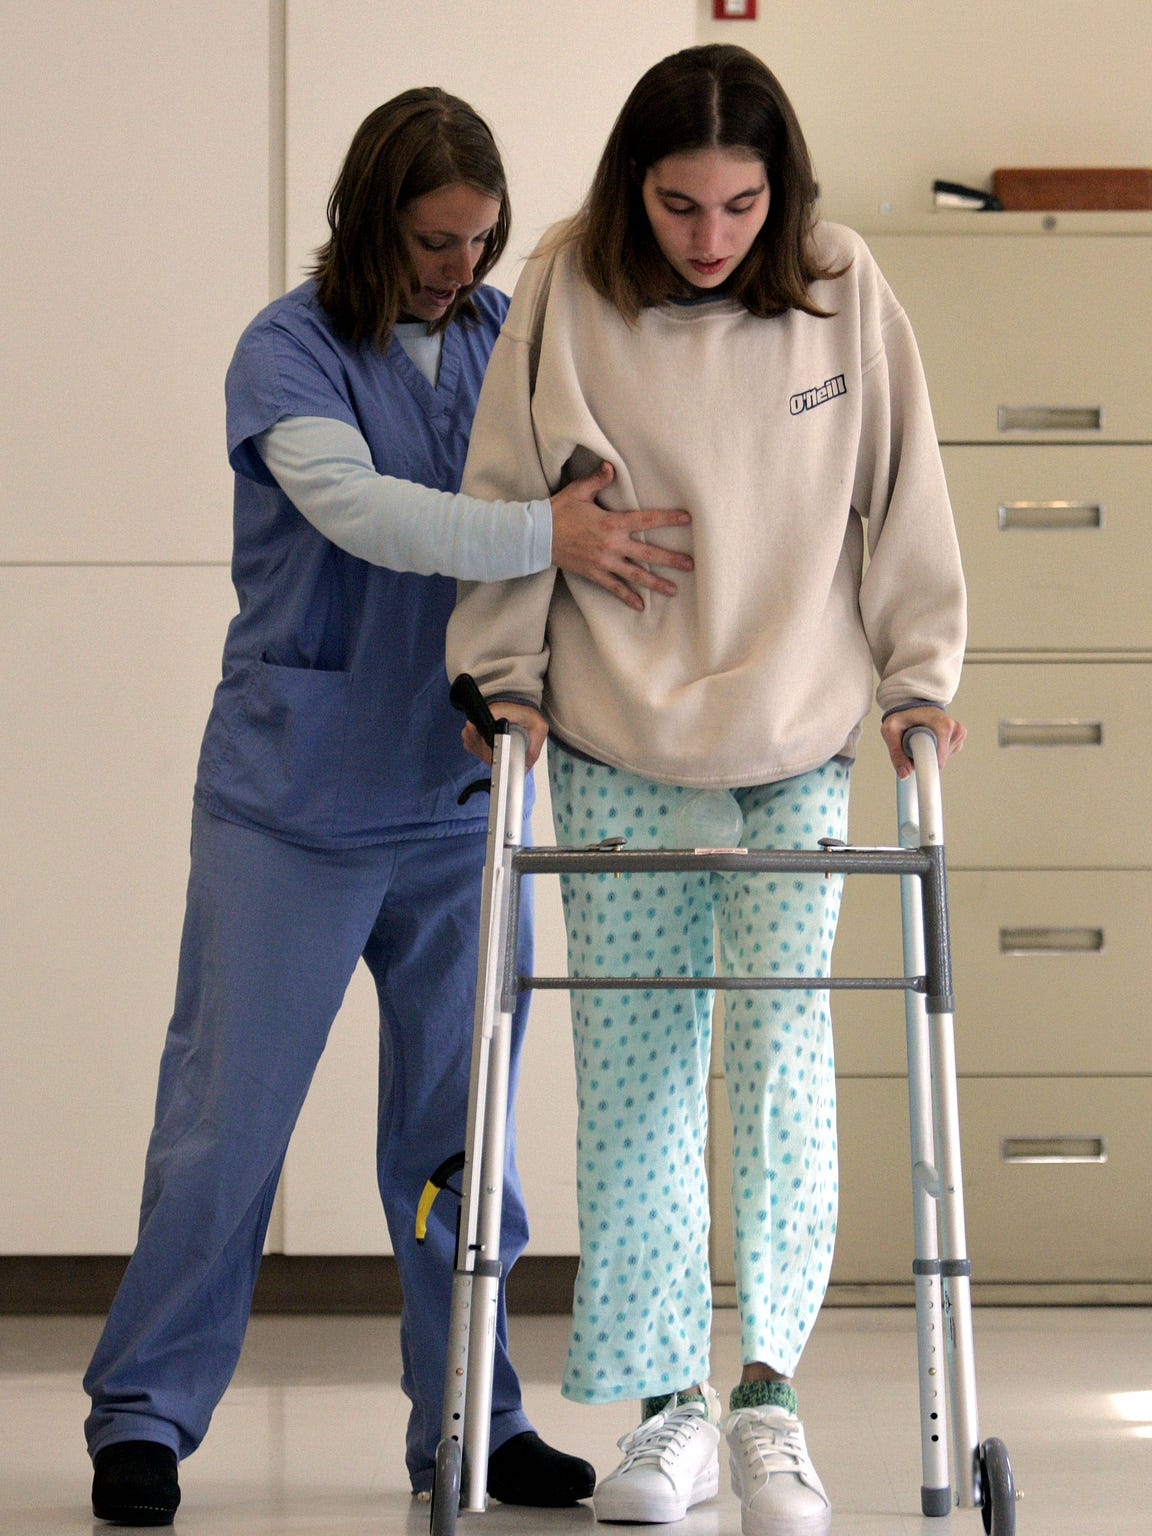 Occupational therapist Amy Cisler, left, reaches out